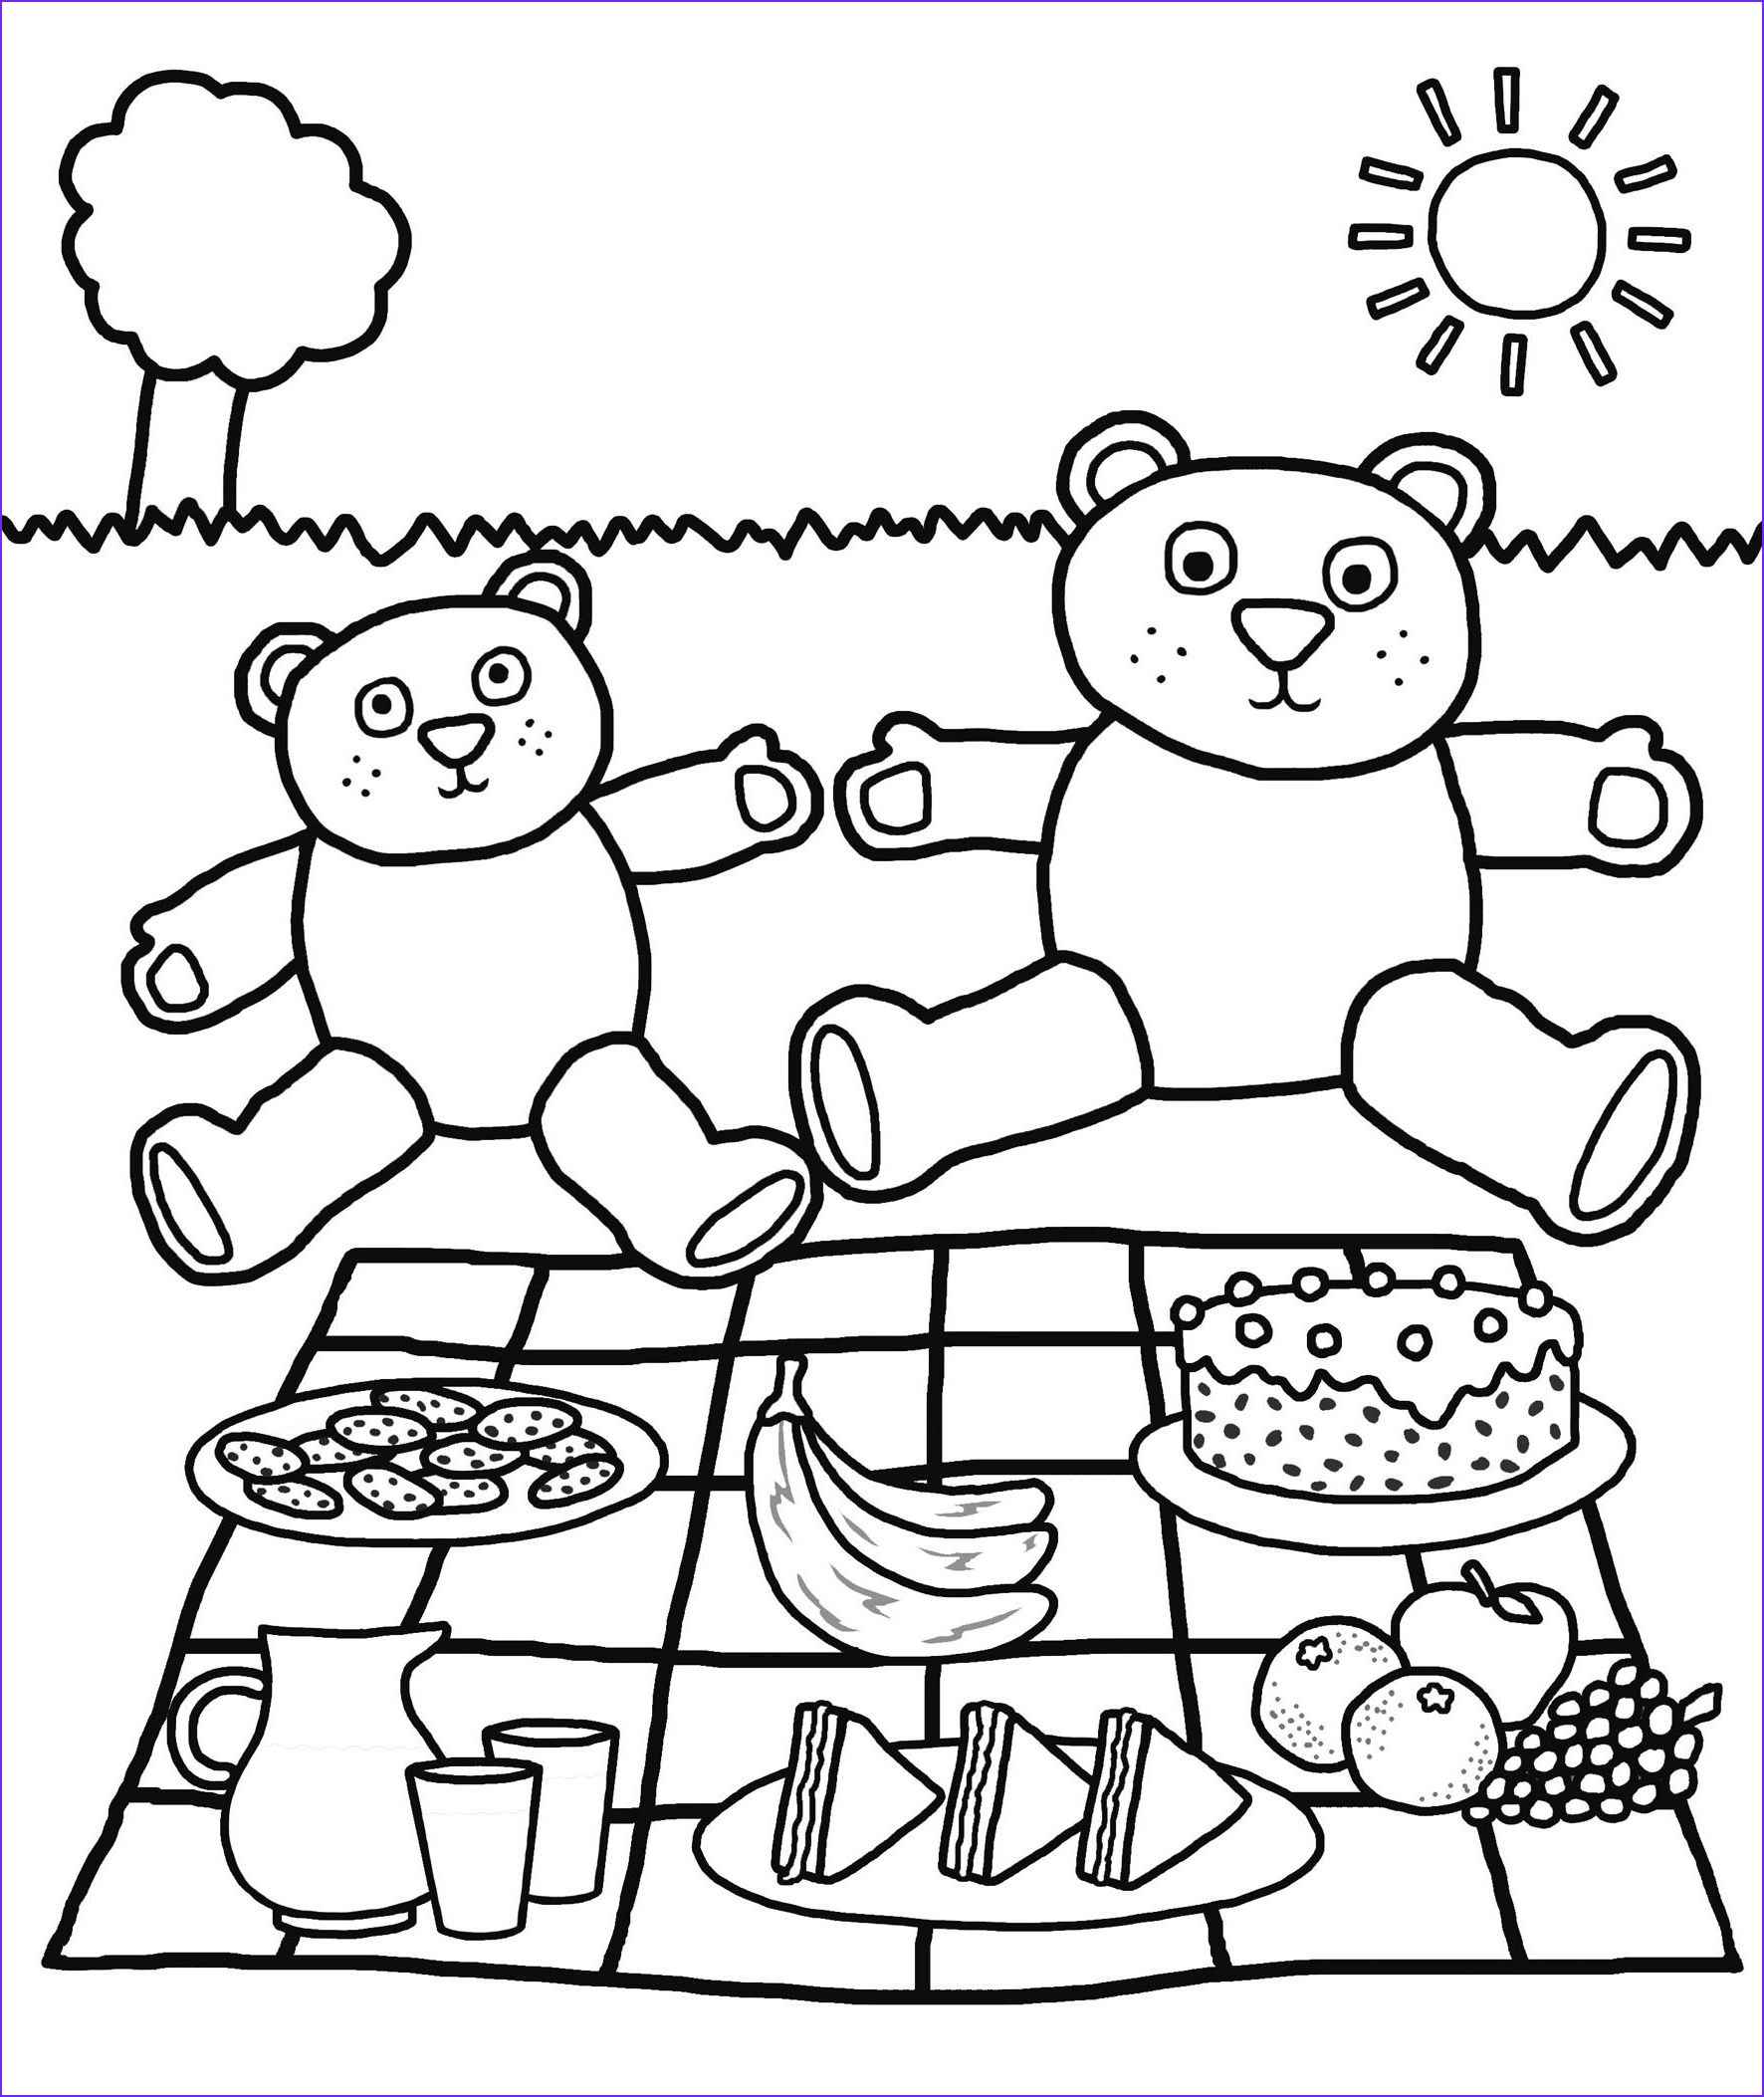 13 New Collection Of Picnic Coloring Sheet Okul